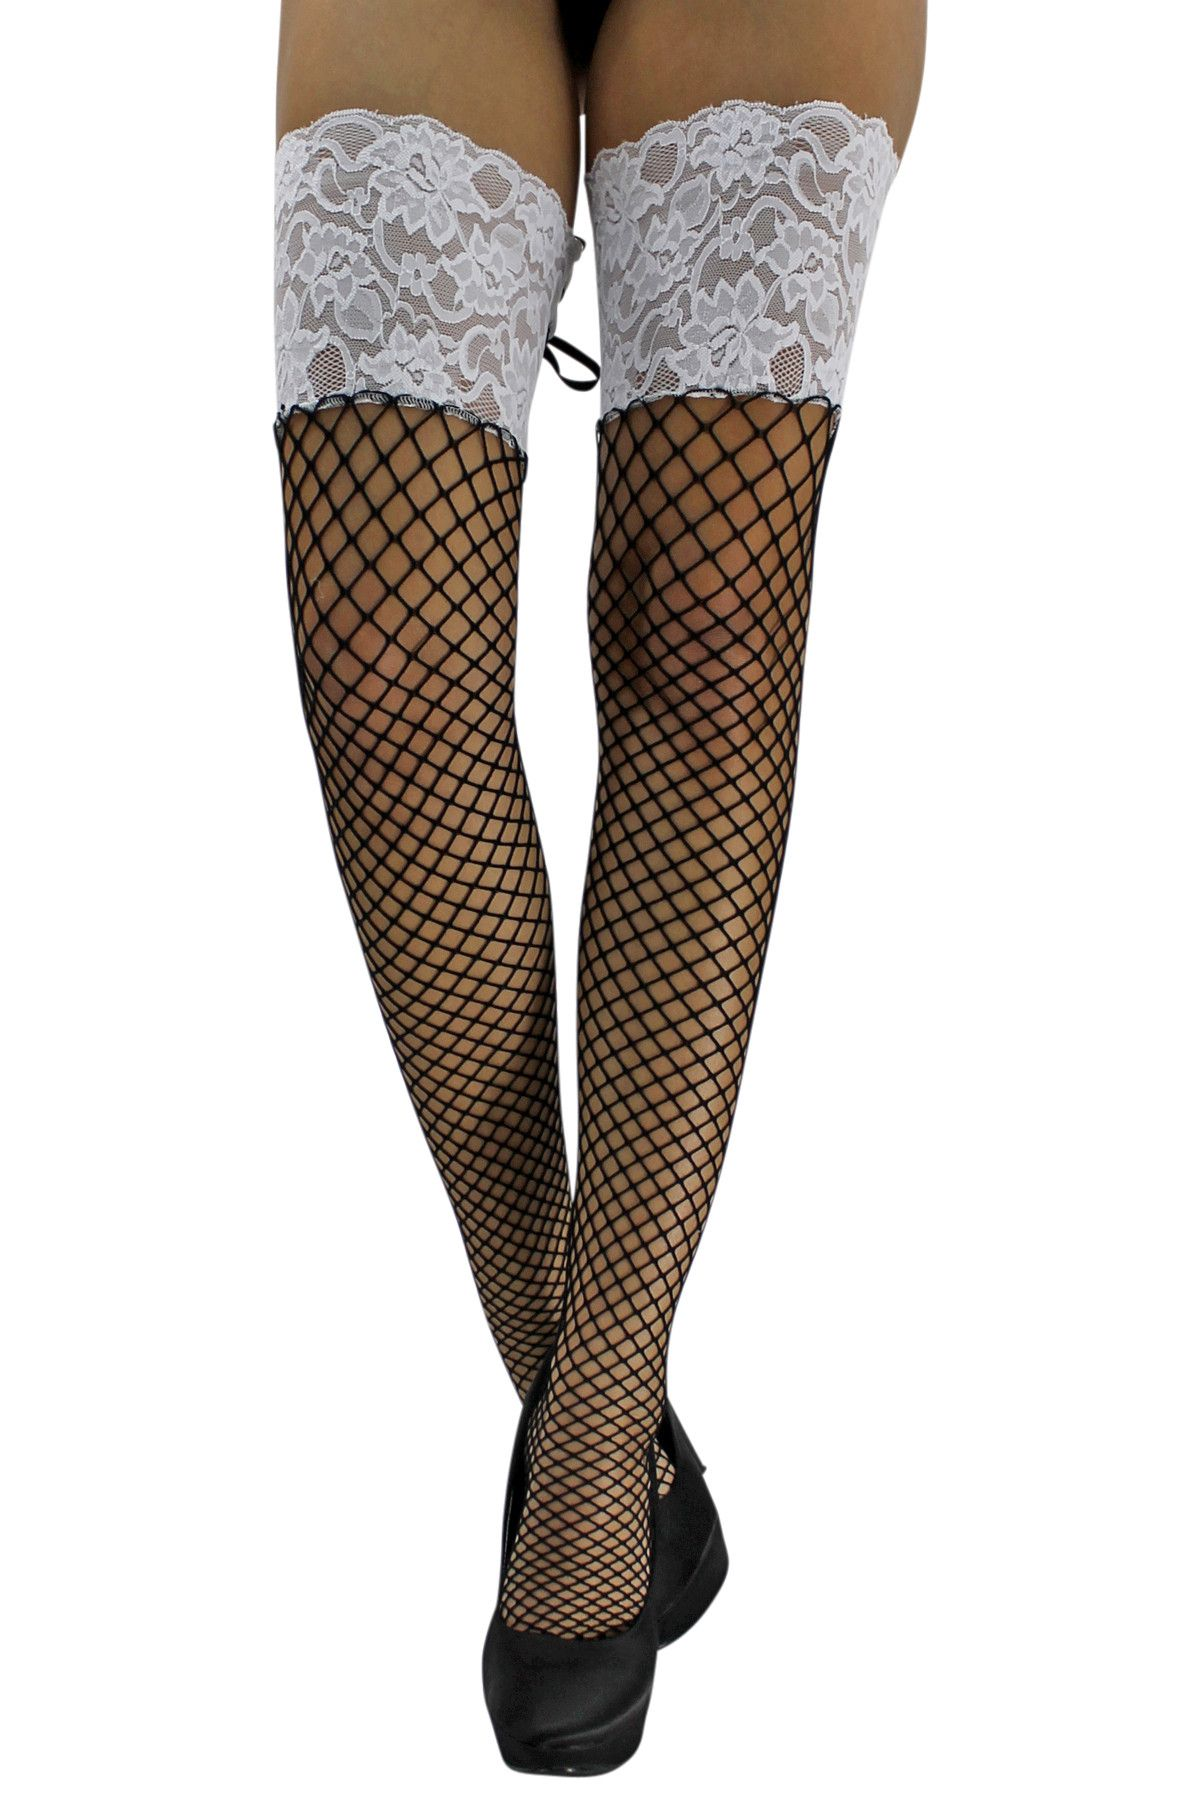 67d623dba5c Black   White Lace Top Thigh High Fishnets With Tie Up